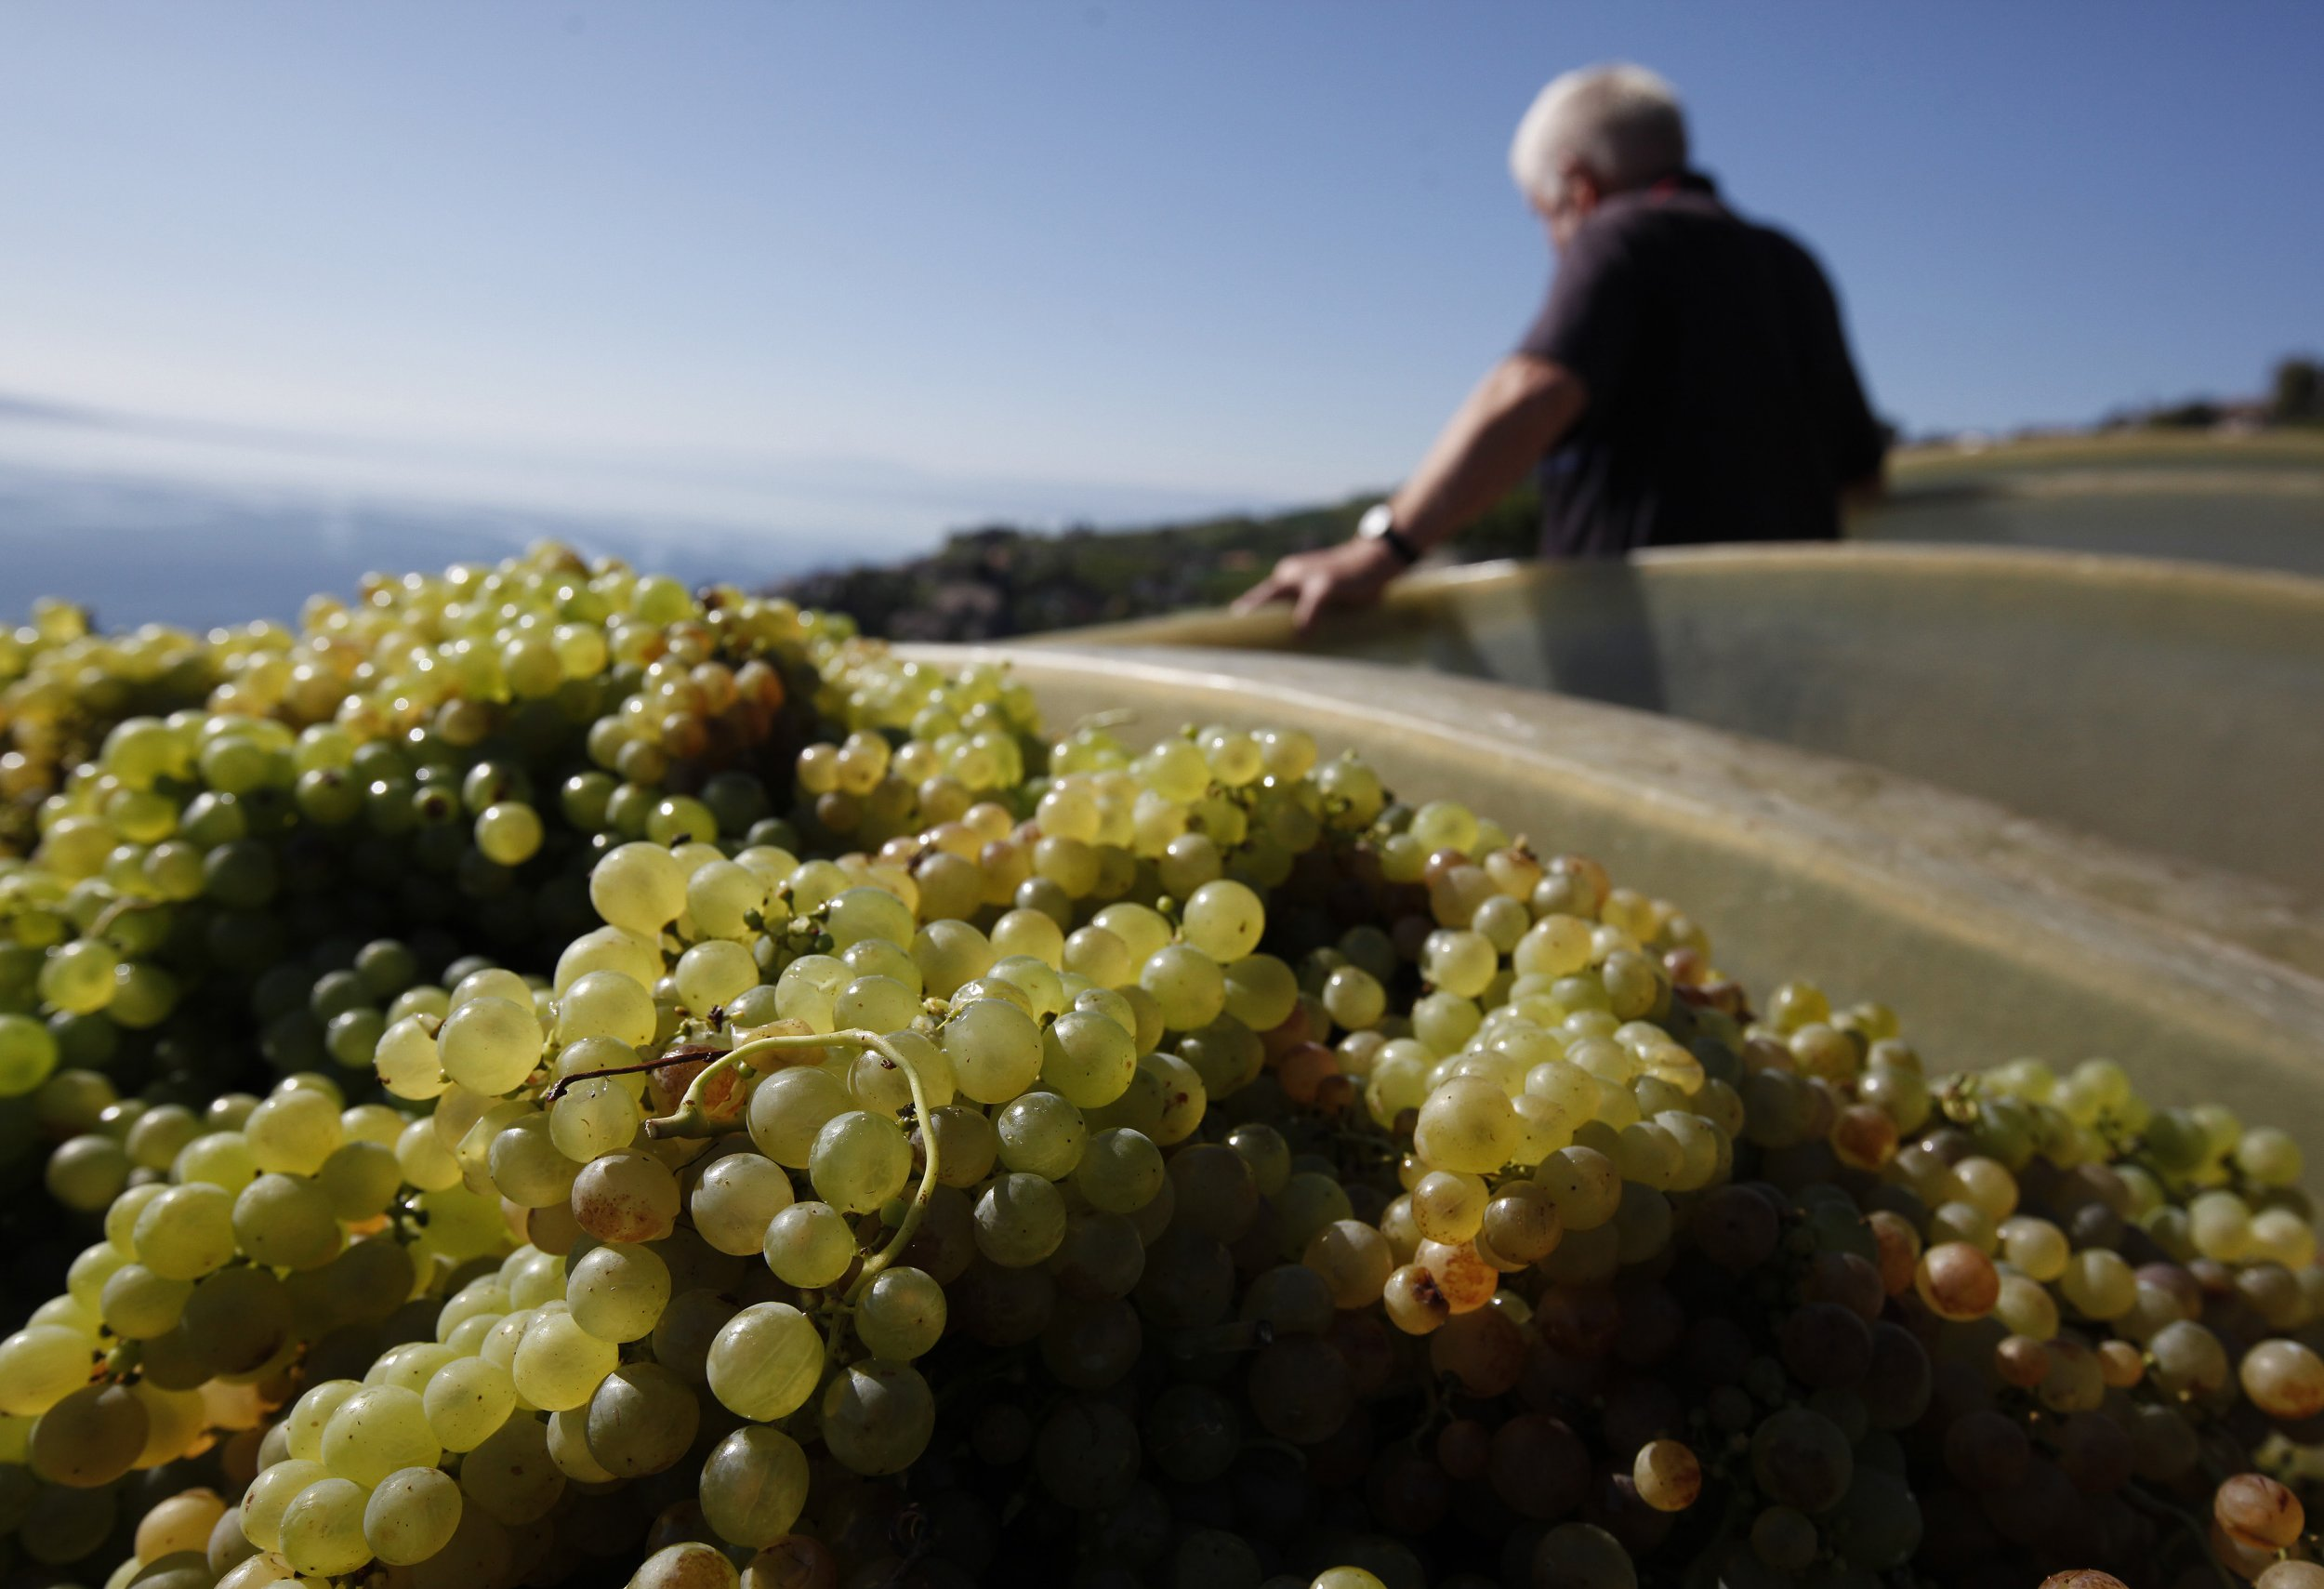 Grapes being harvested